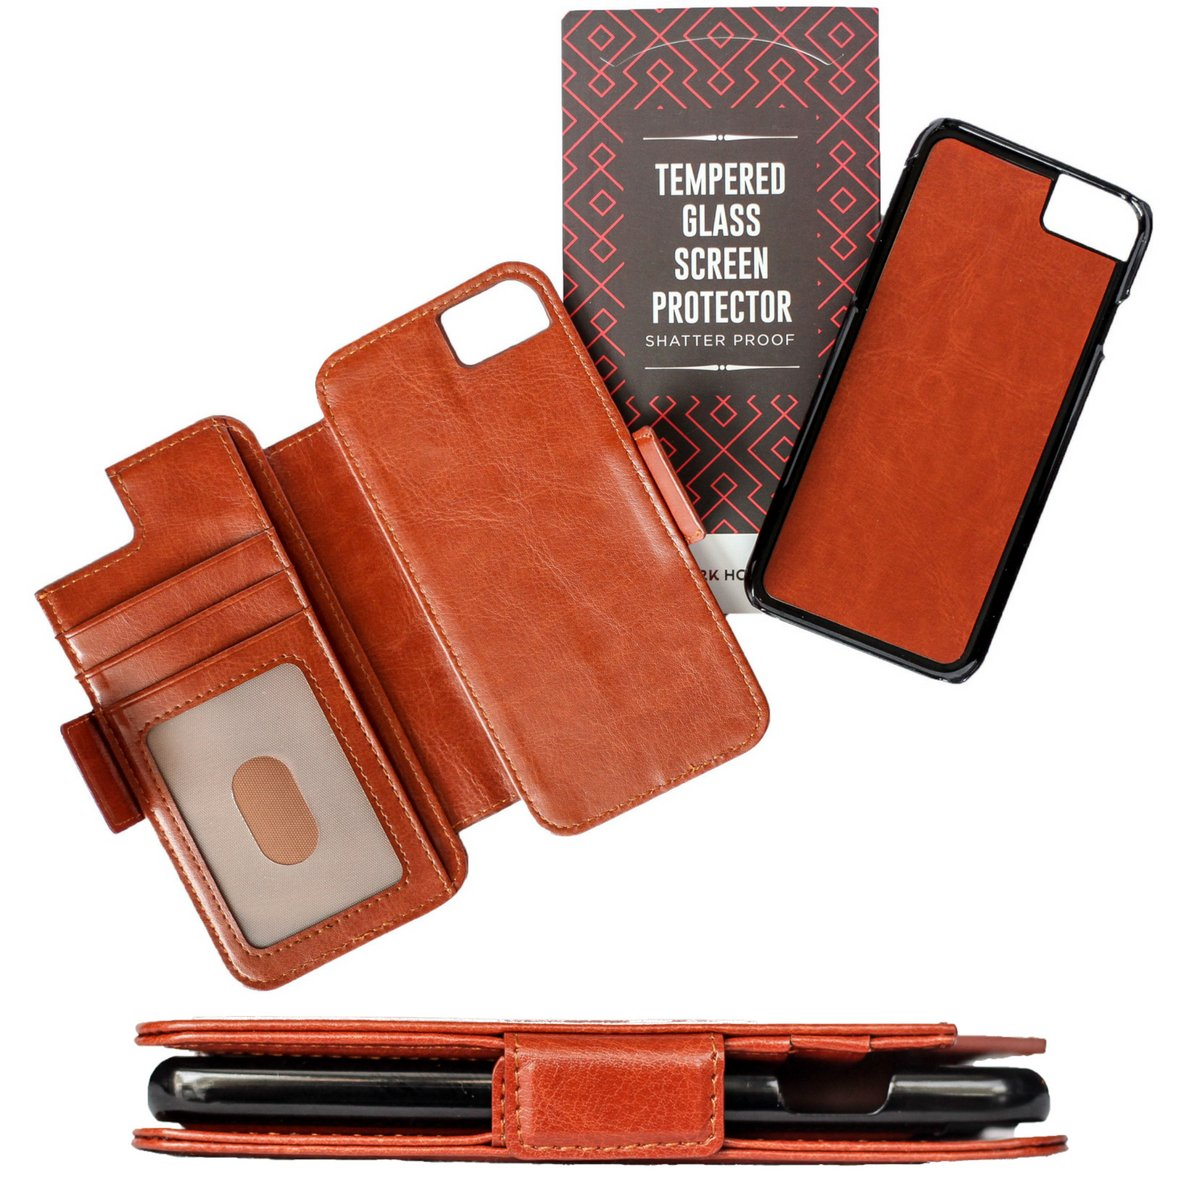 Dark Horse Travel Thru View 7+ Wallet Case - Compatible with iPhone 7 Plus - Luxury Vegan Leather & Detachable Magnetic Shell | RFID Protection - Brown